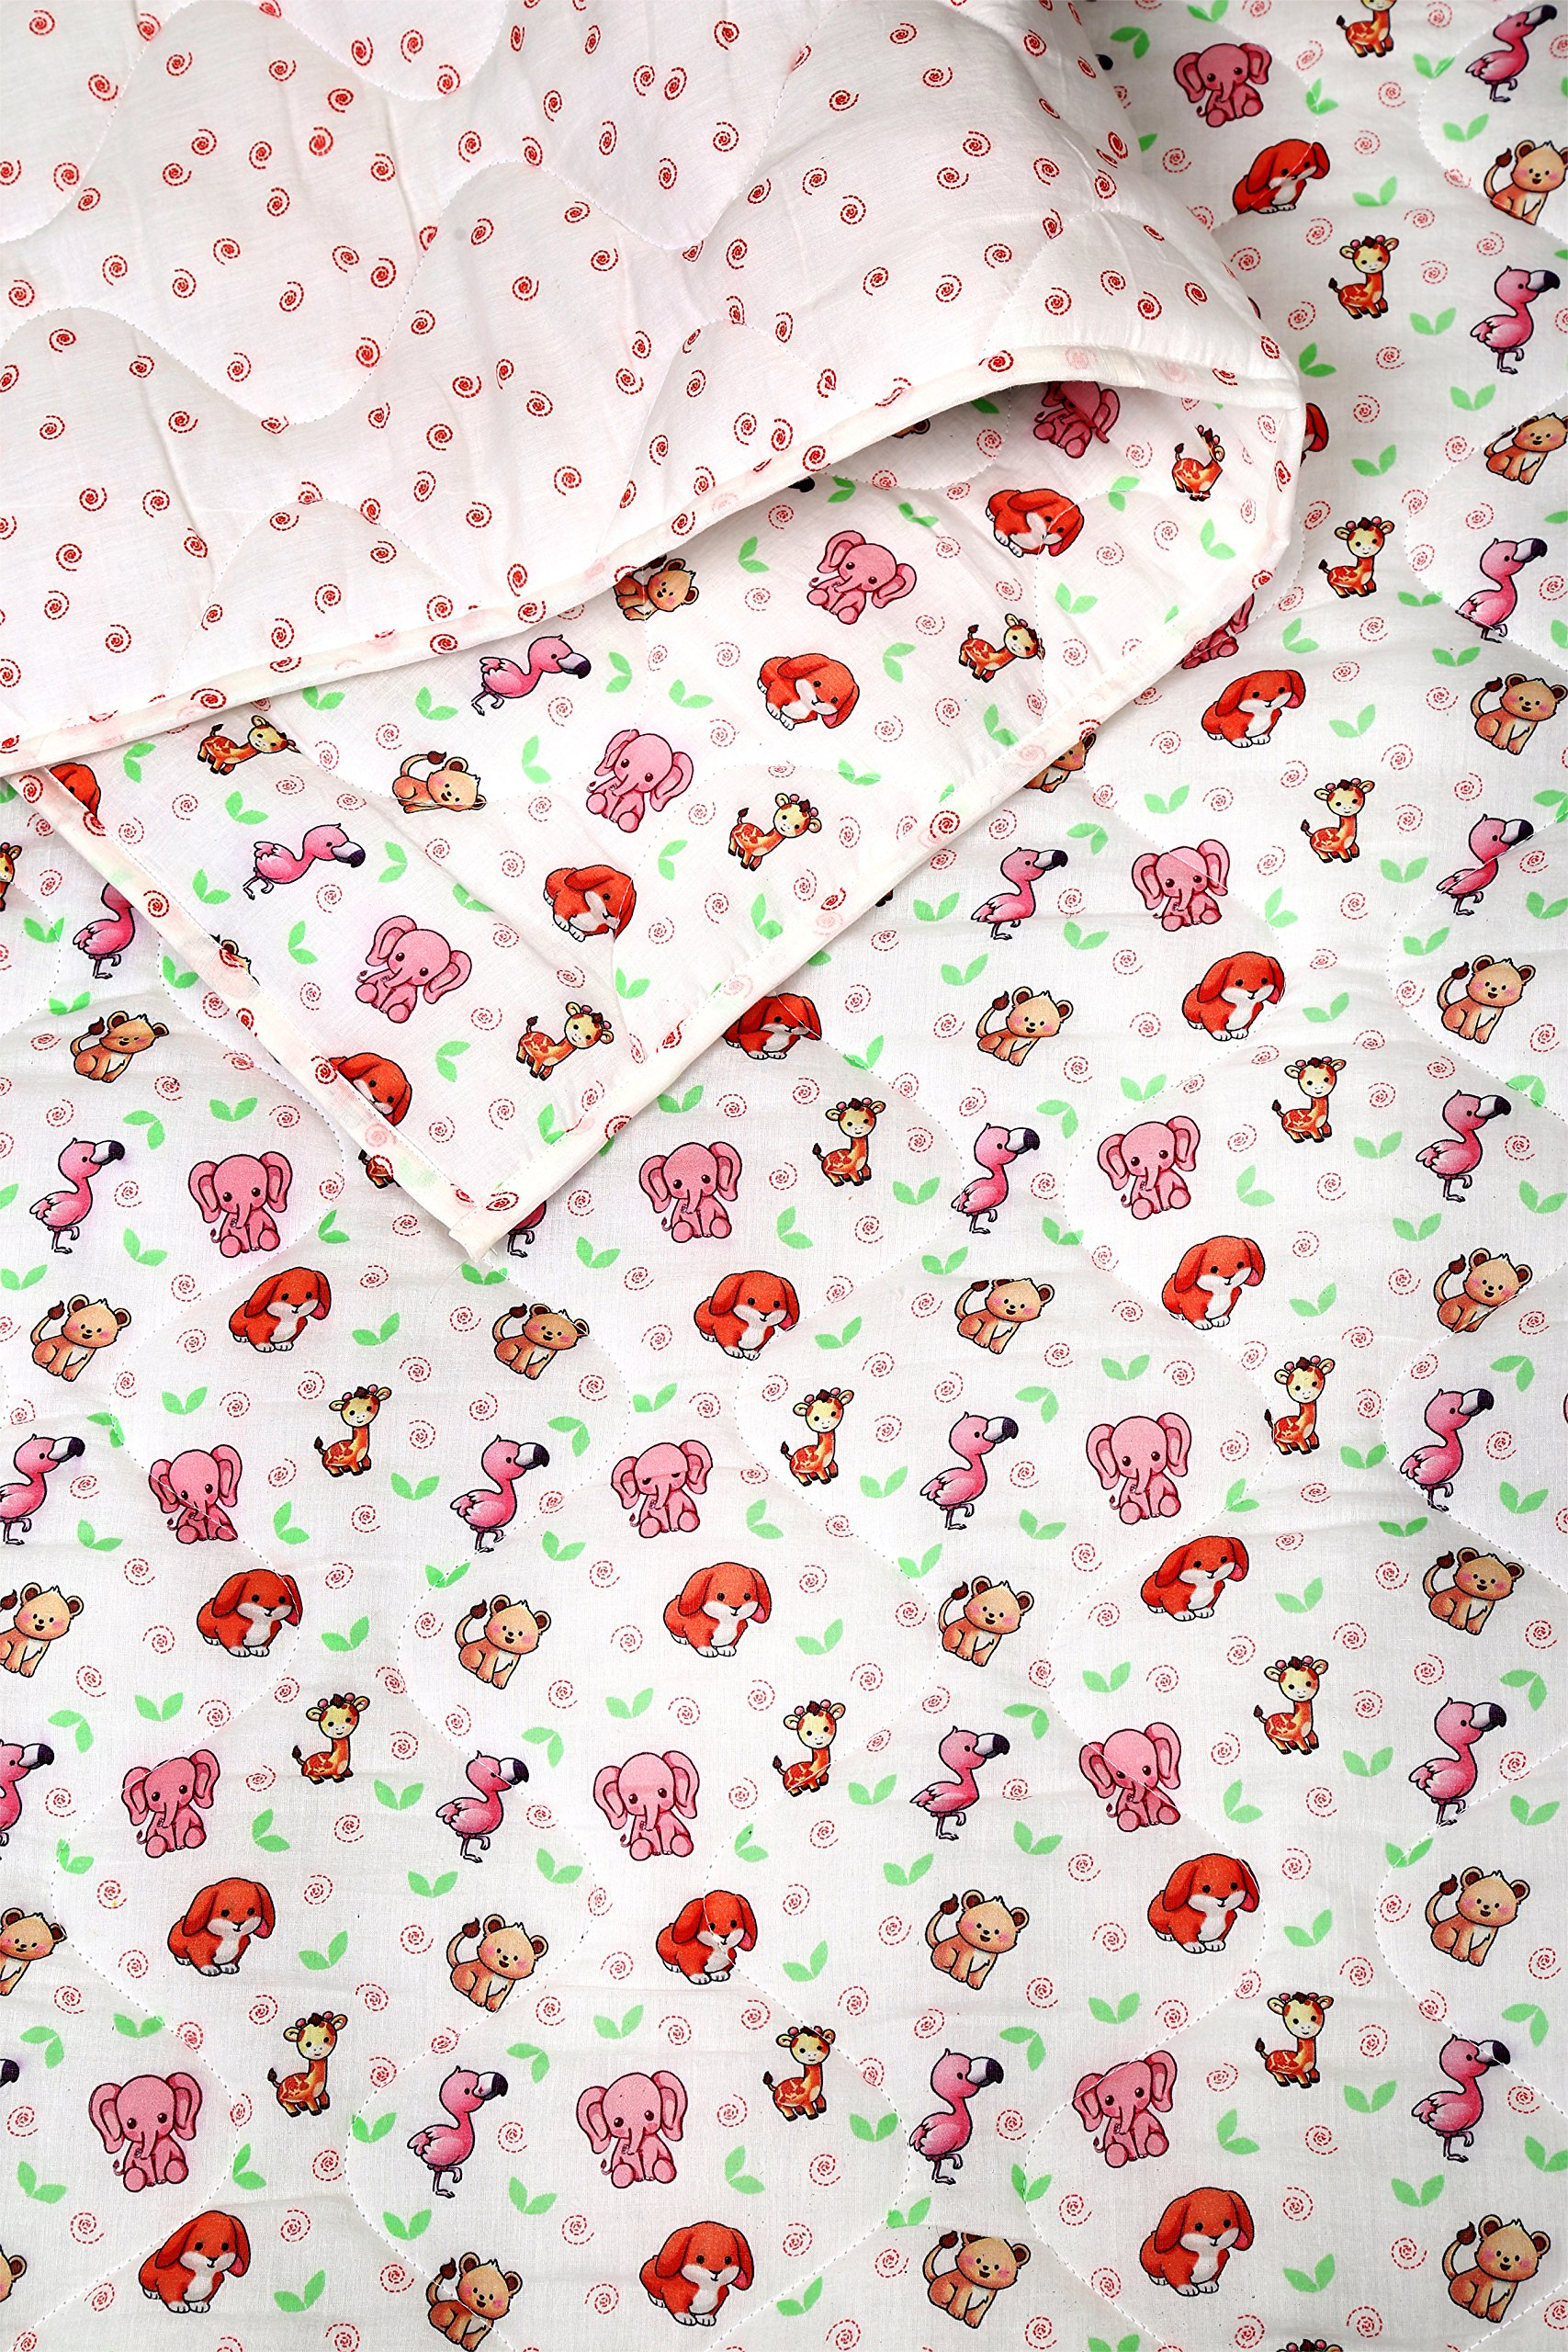 White and Pink Baby Quilt - Warm and Snuggly Toddler Blanket Animal Printed Crib Comforter for New Born Boys & Girls Bed Covers by RAJRANG (Image #3)